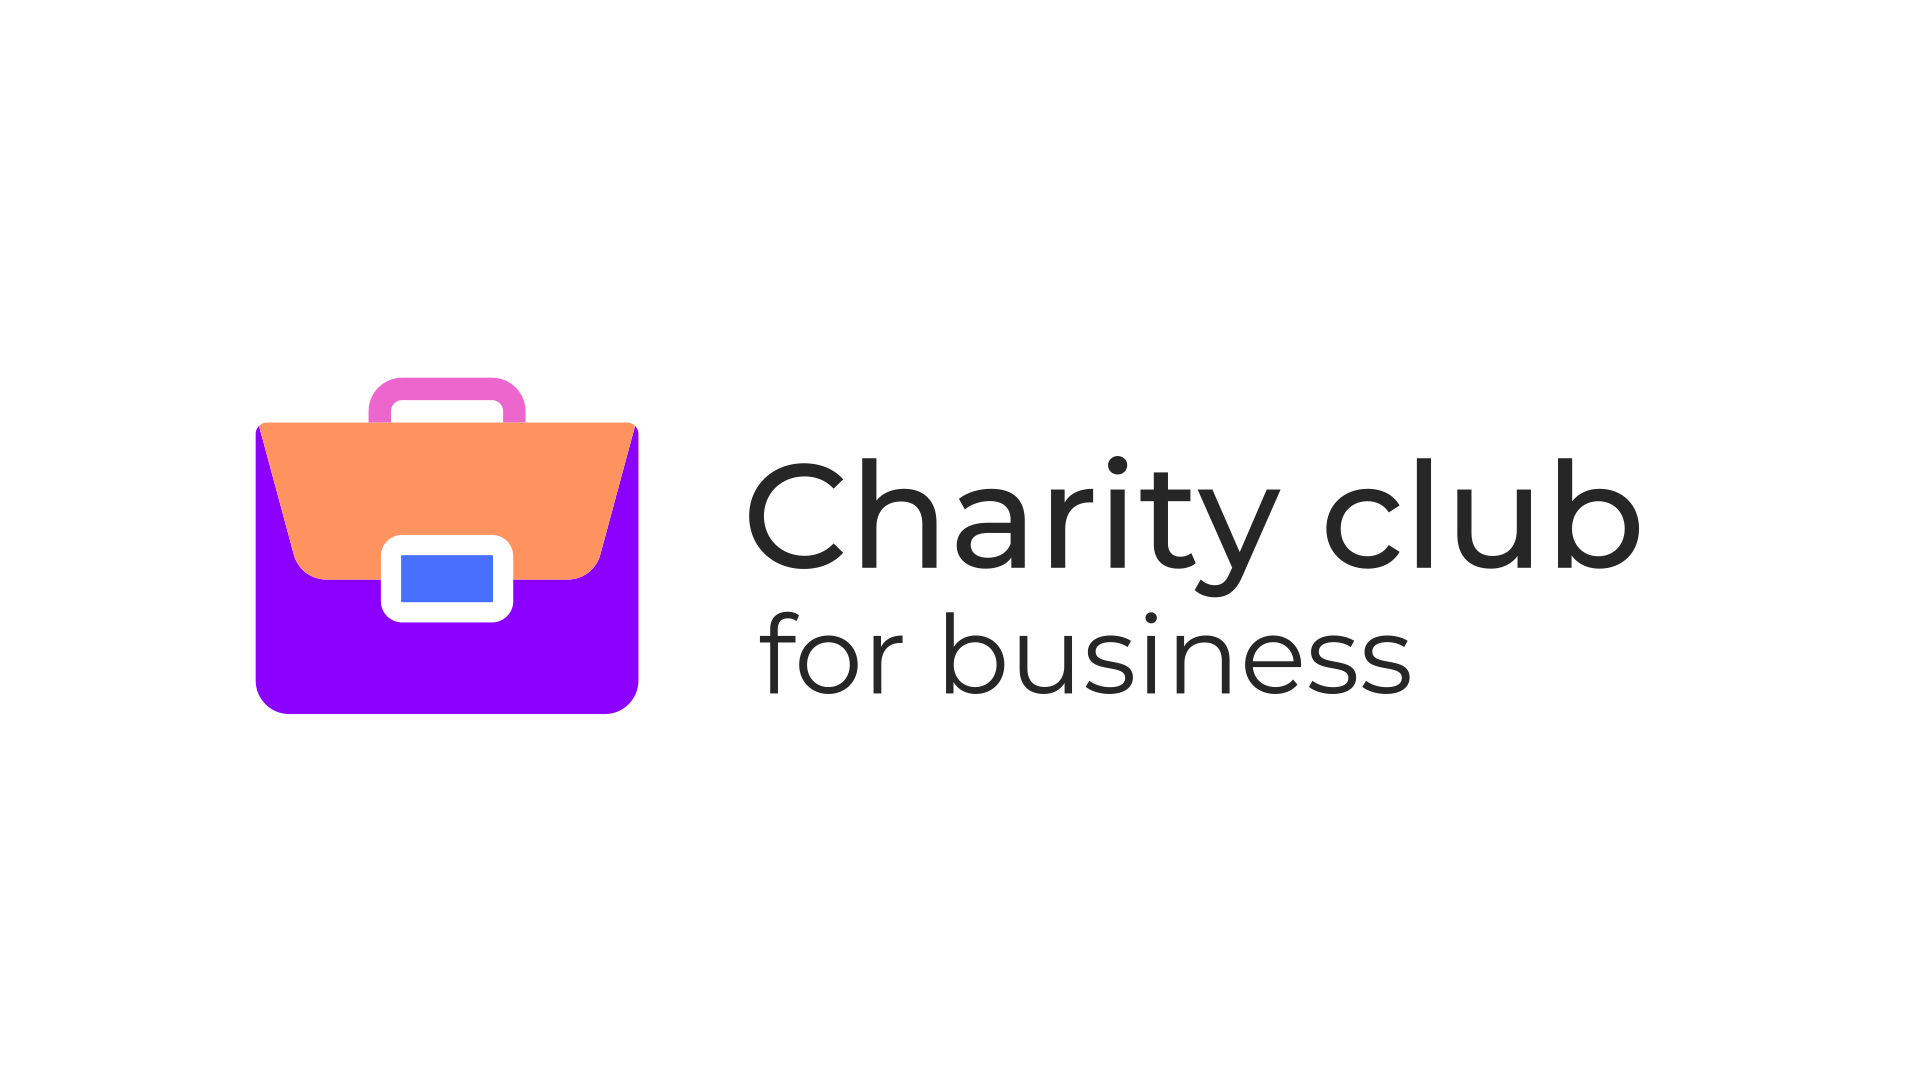 Charity for business